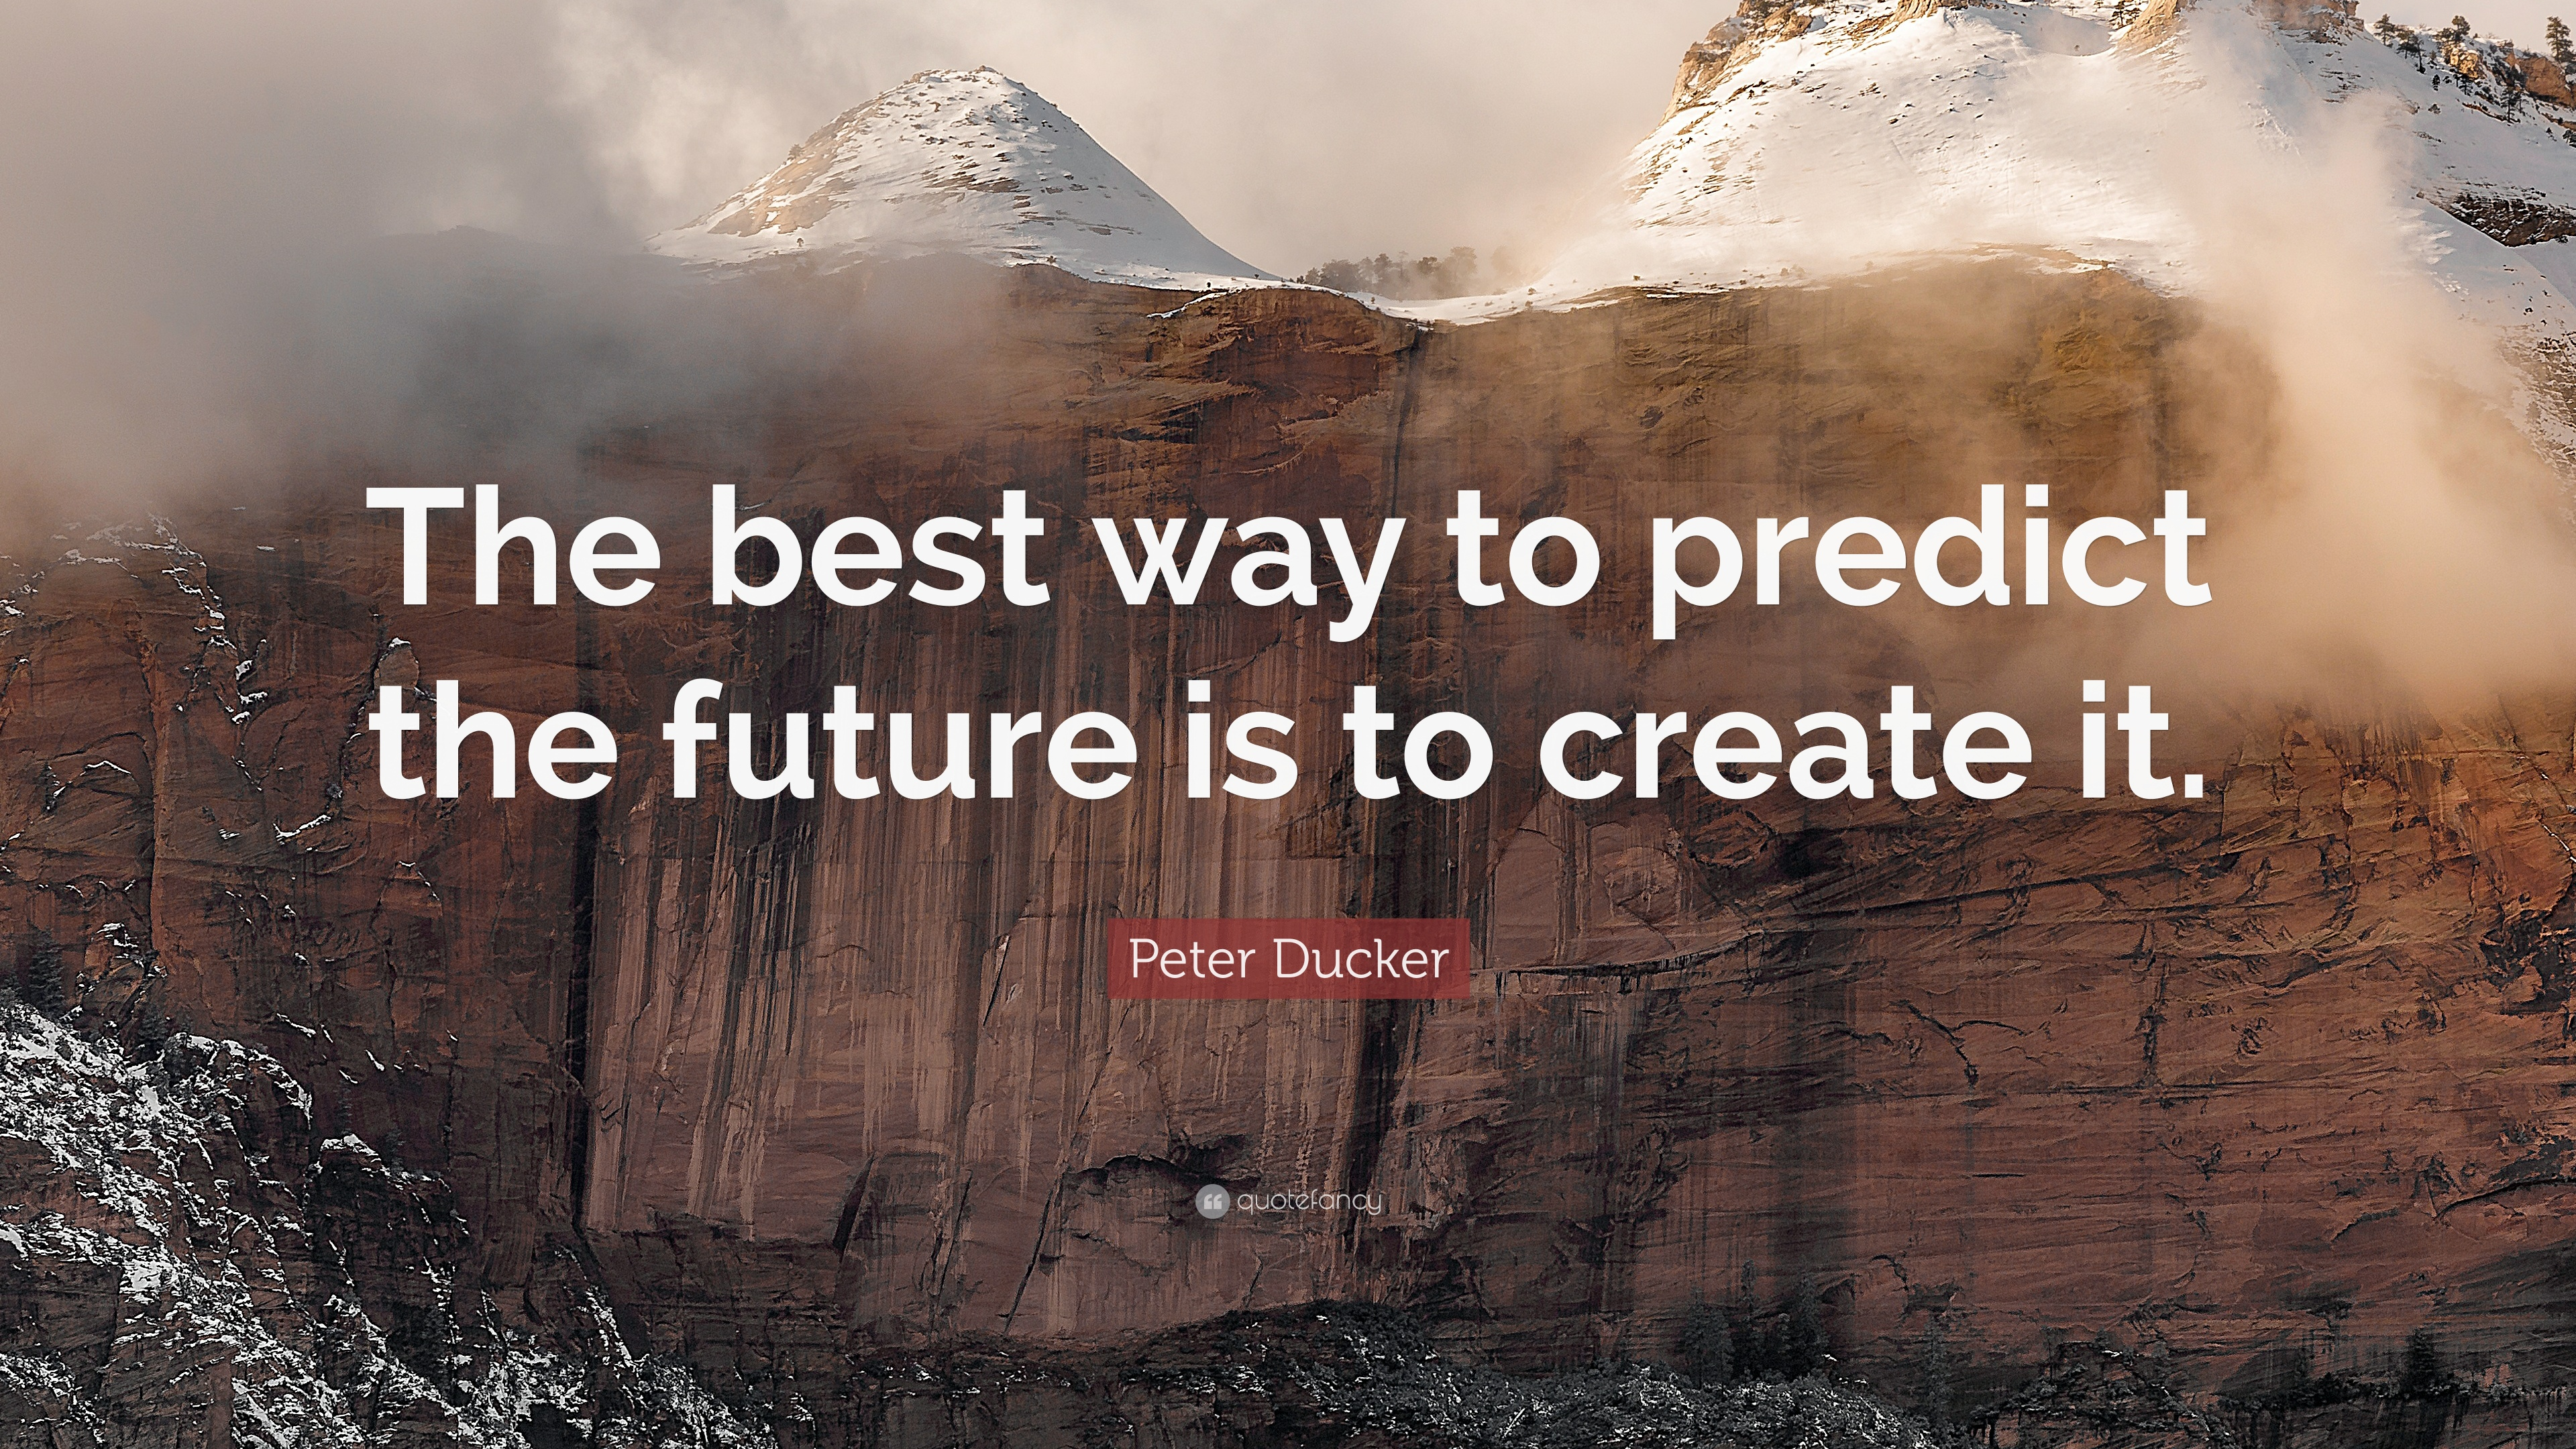 Awesome Peter Ducker Quote: U201cThe Best Way To Predict The Future Is To Create It